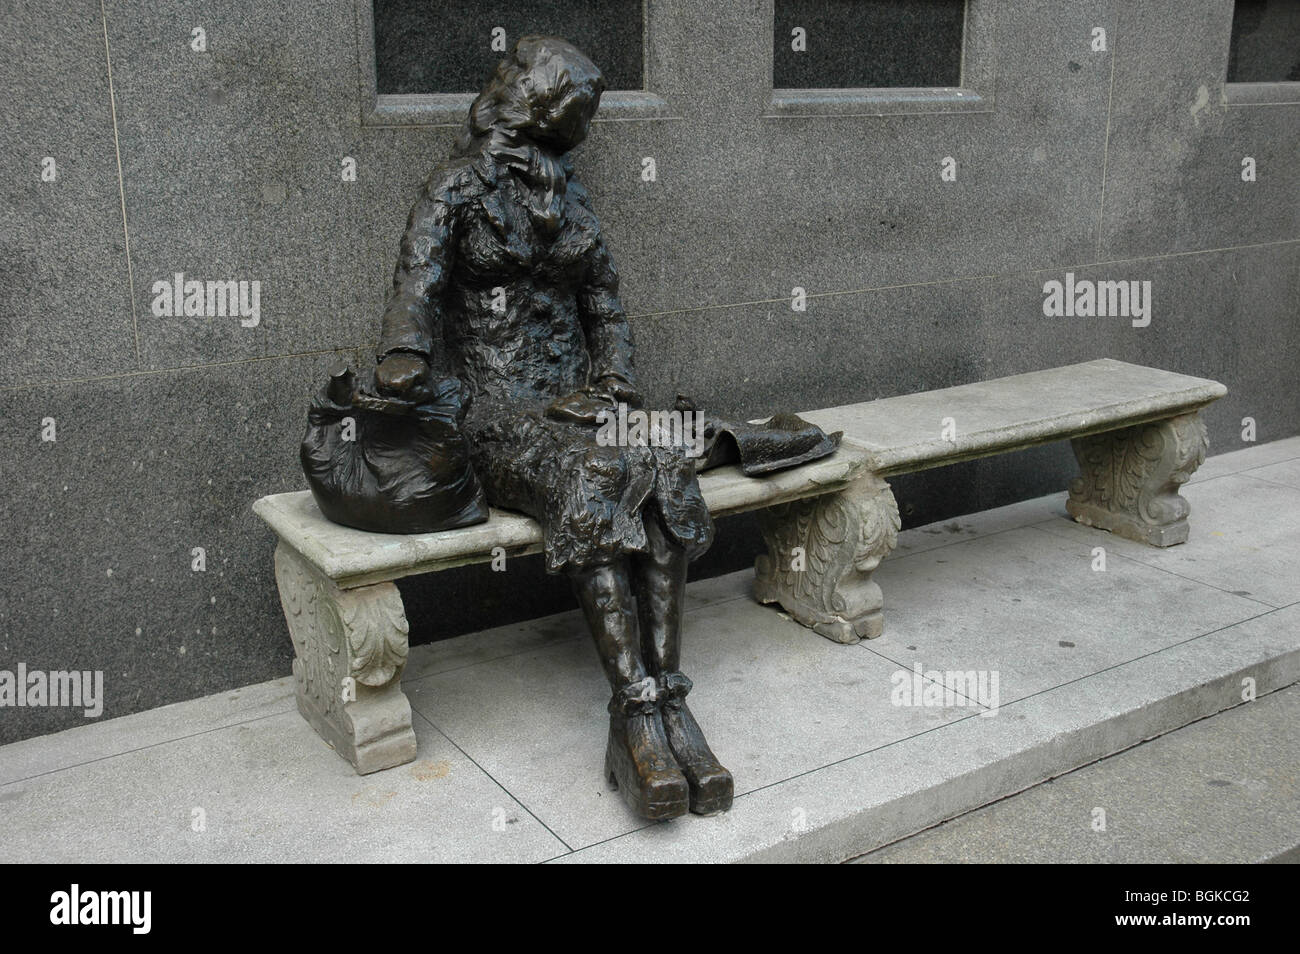 Eleanor Rigby Sculpture By Tommy Steele. A Famous Song Written By The  Beatles From Liverpool, England, UK